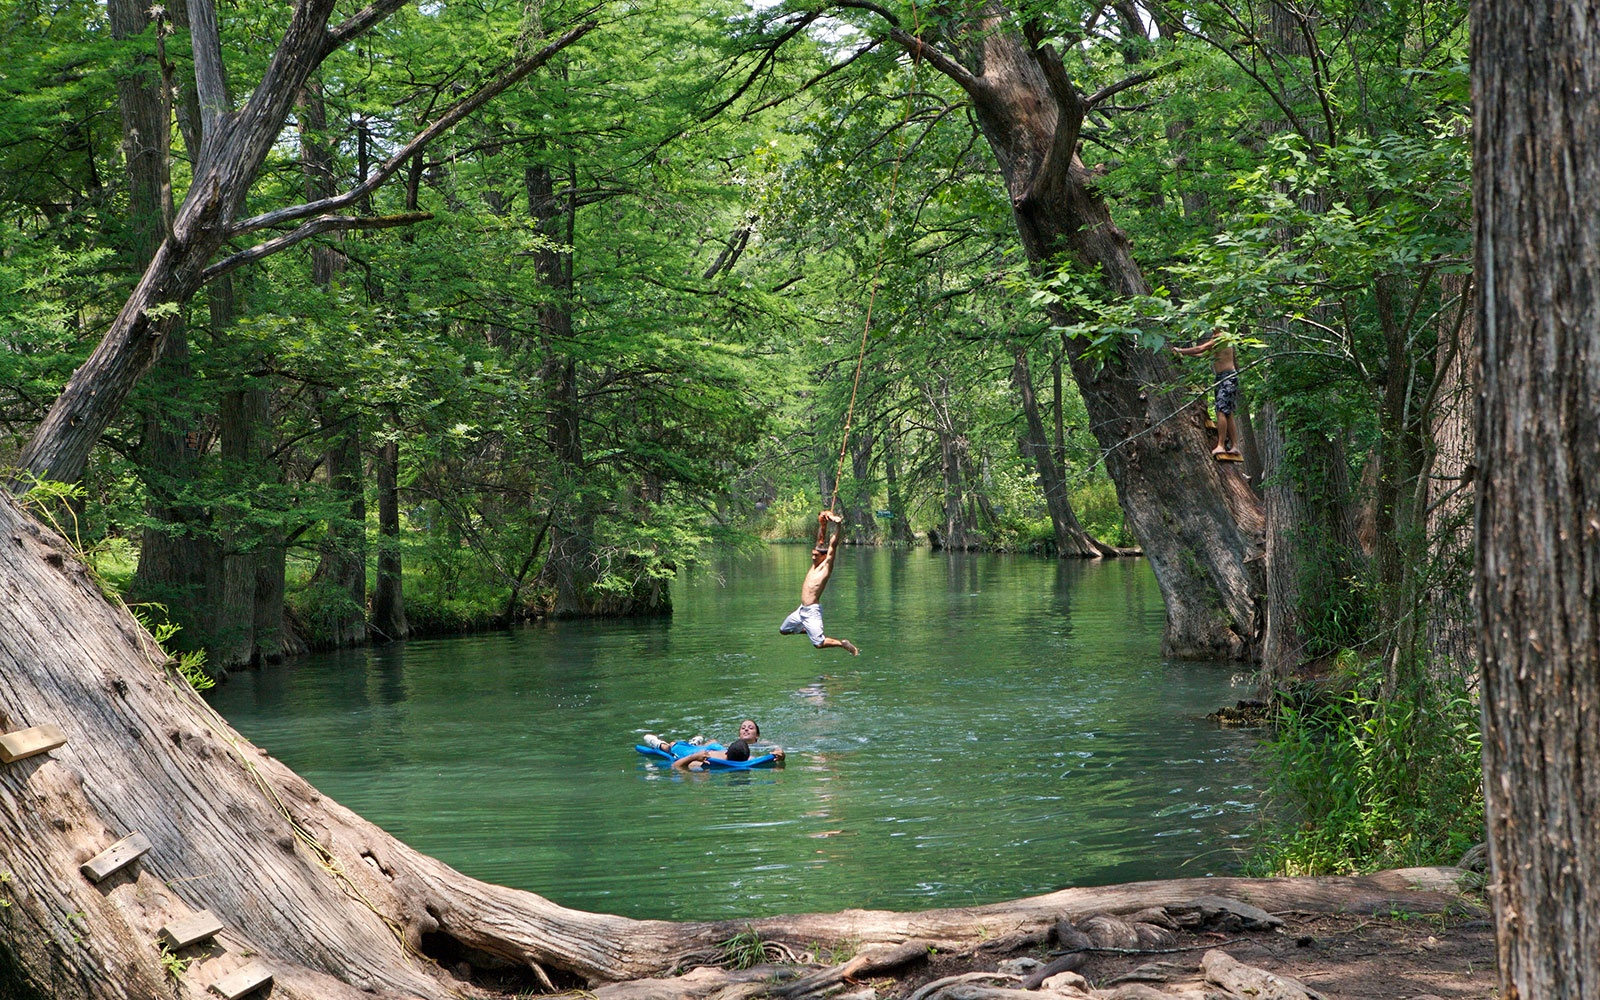 The Blue Hole, Wimberly, TX